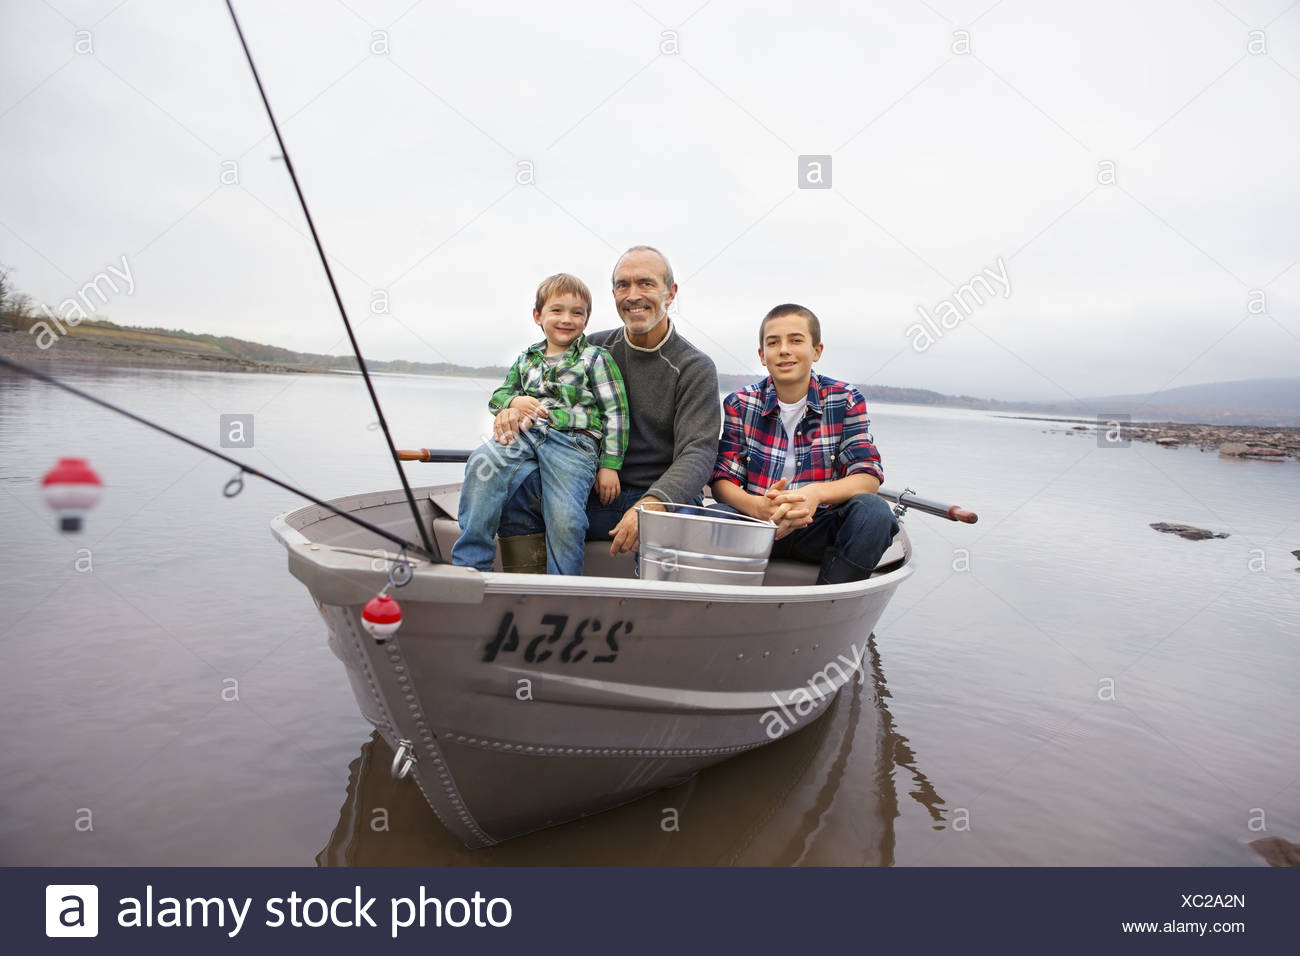 A day out at Ashokan lake. A man and two boys fishing from a boat. - Stock Image